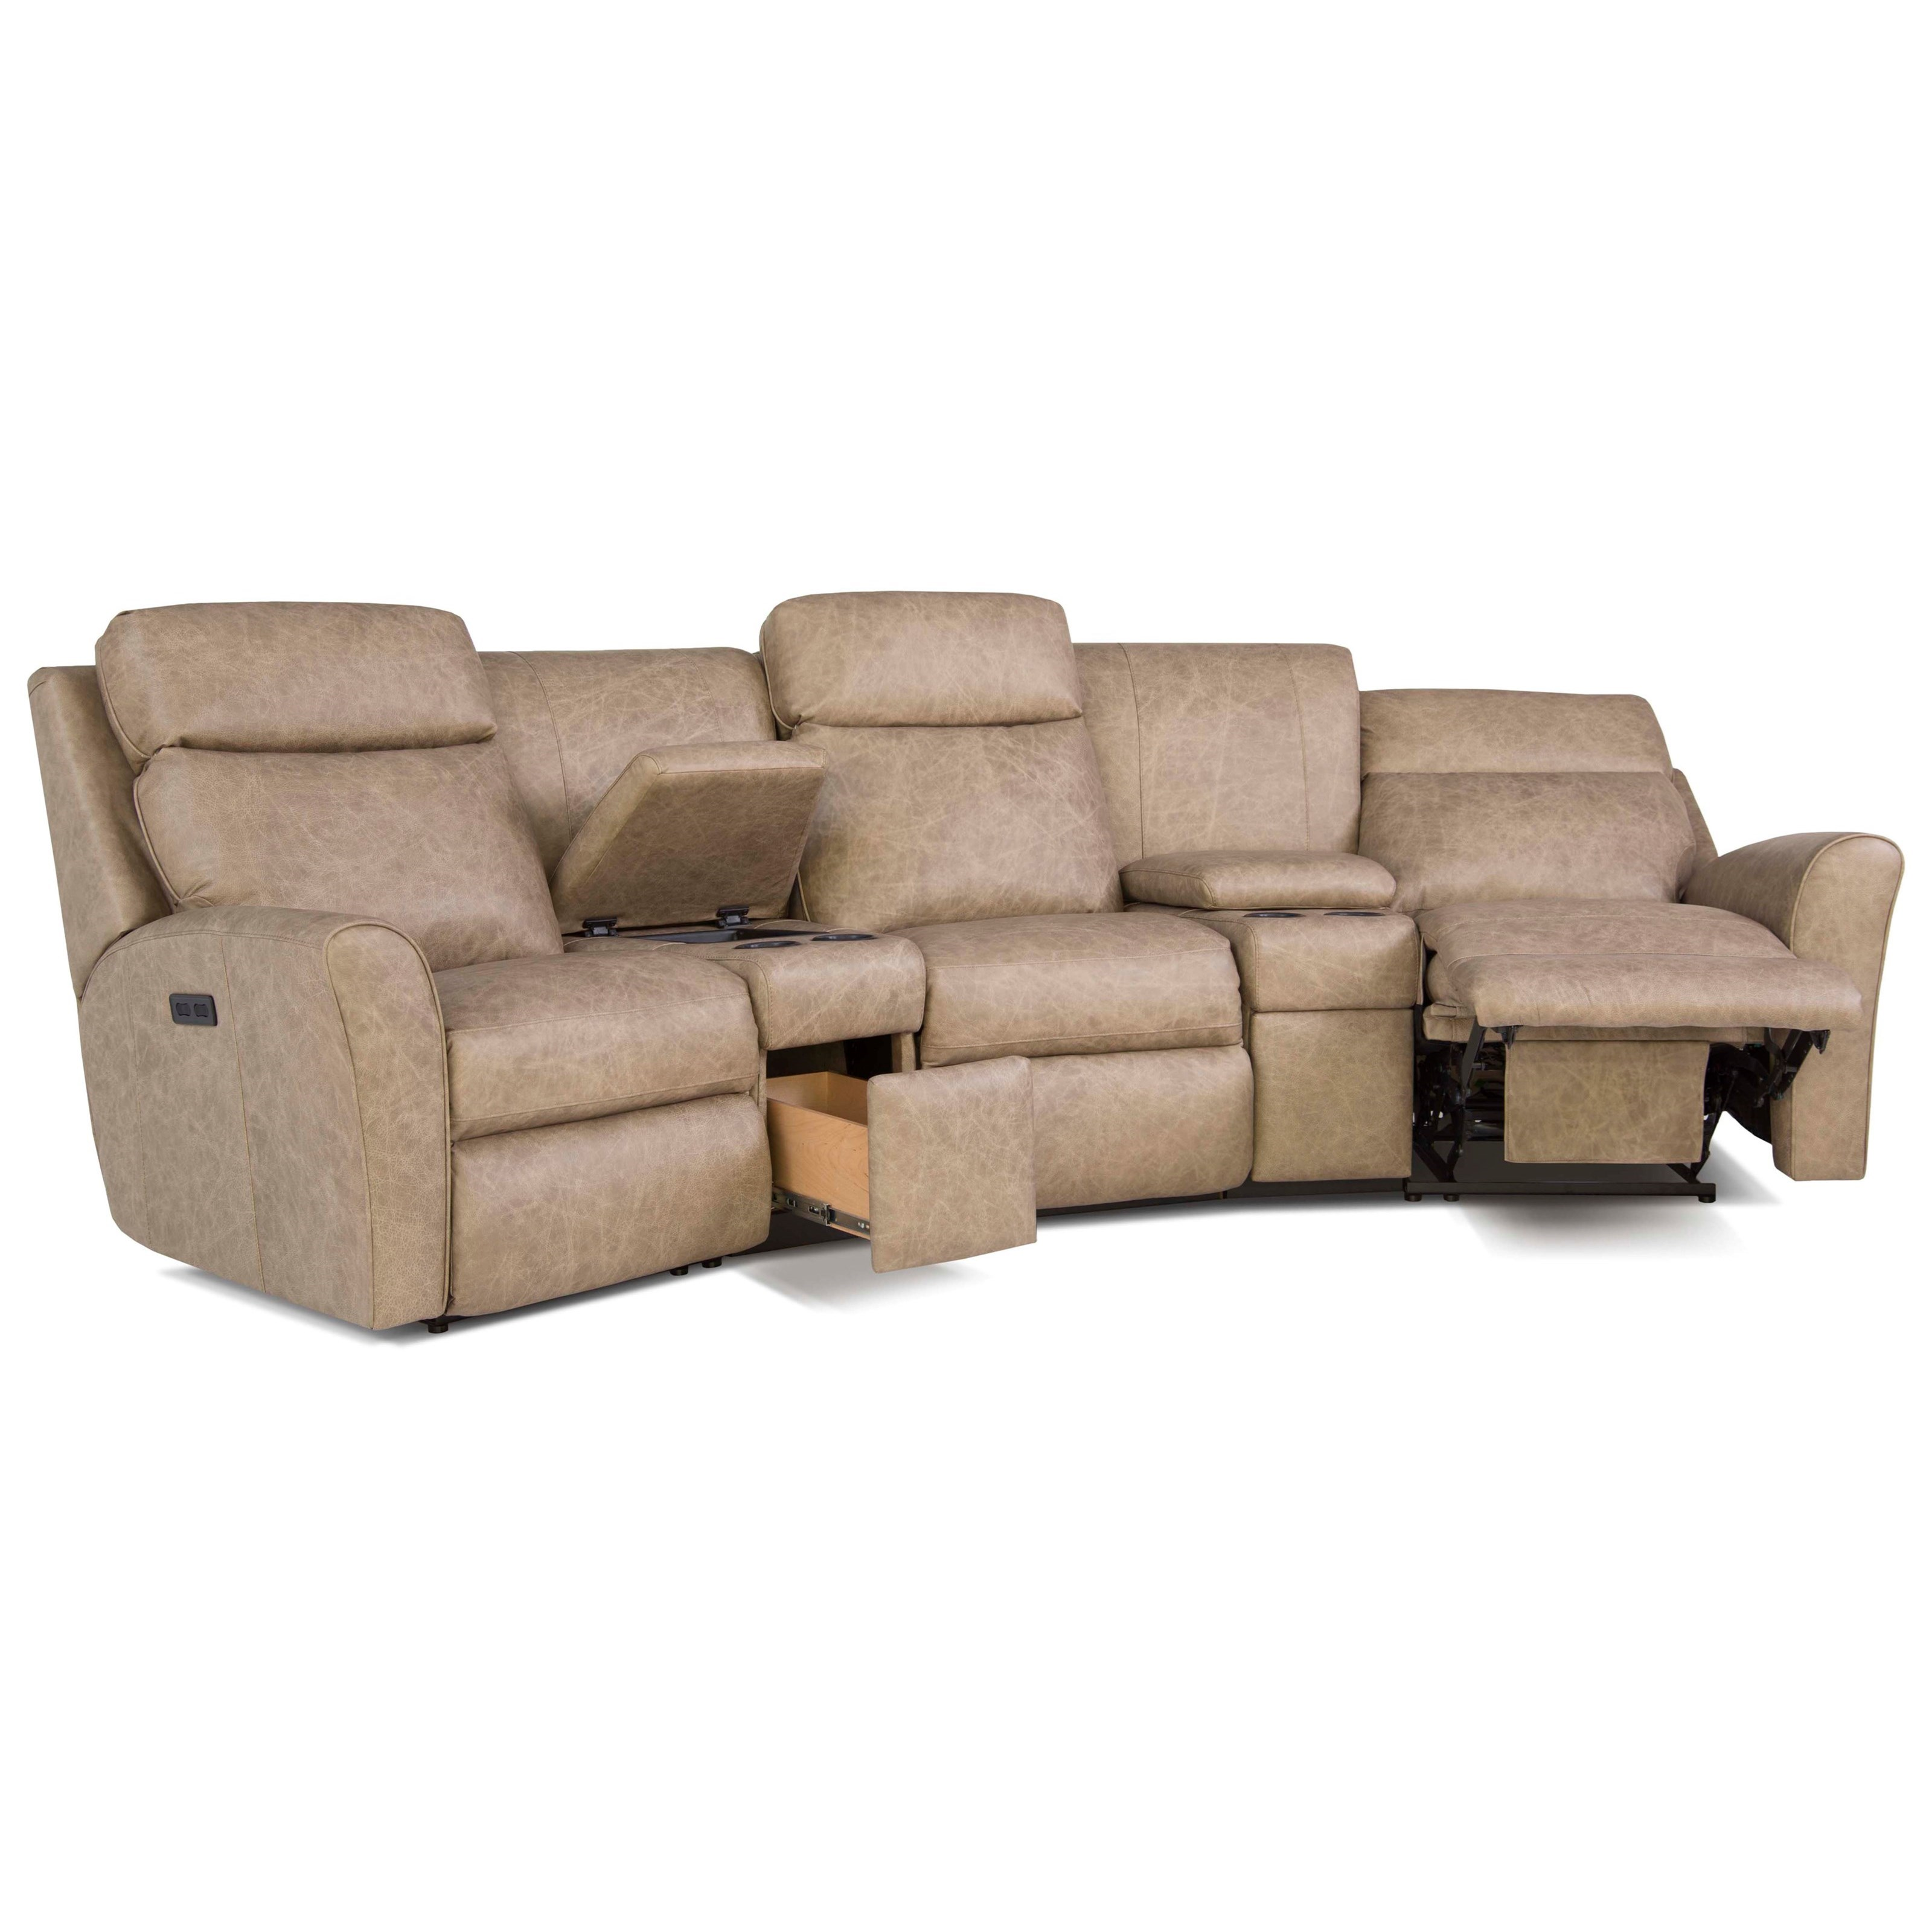 Smith brothers 418 casual motorized reclining conversation for Conversation sofa